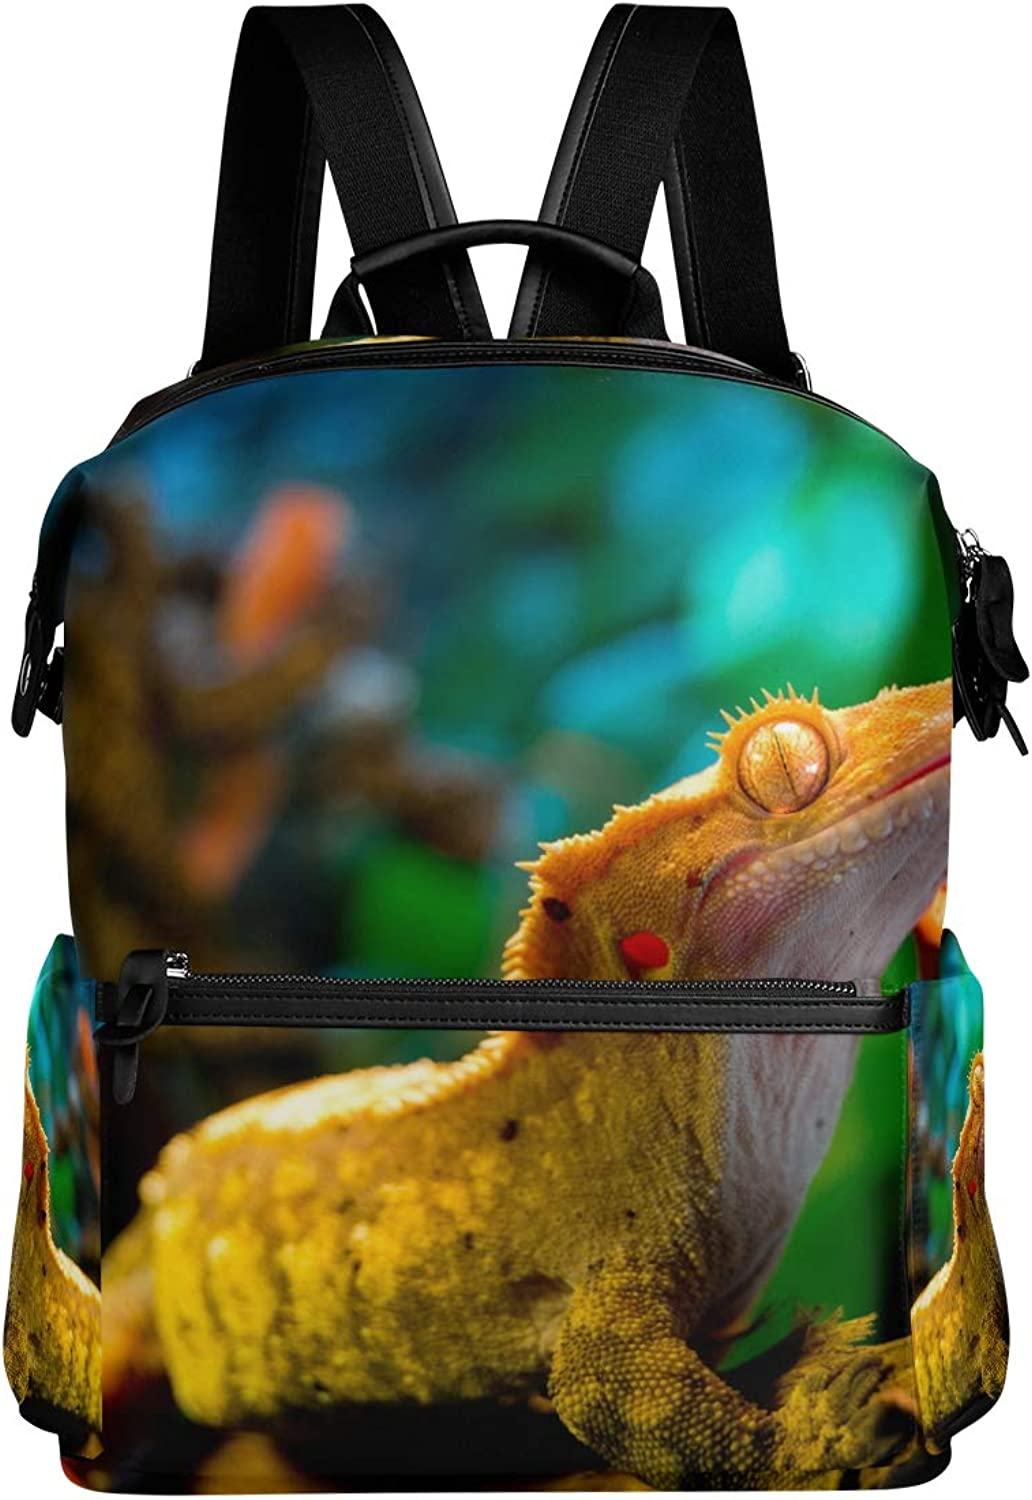 MONTOJ Awesome Reptile Gecko Lizard Leather Travel Bag Campus Backpack